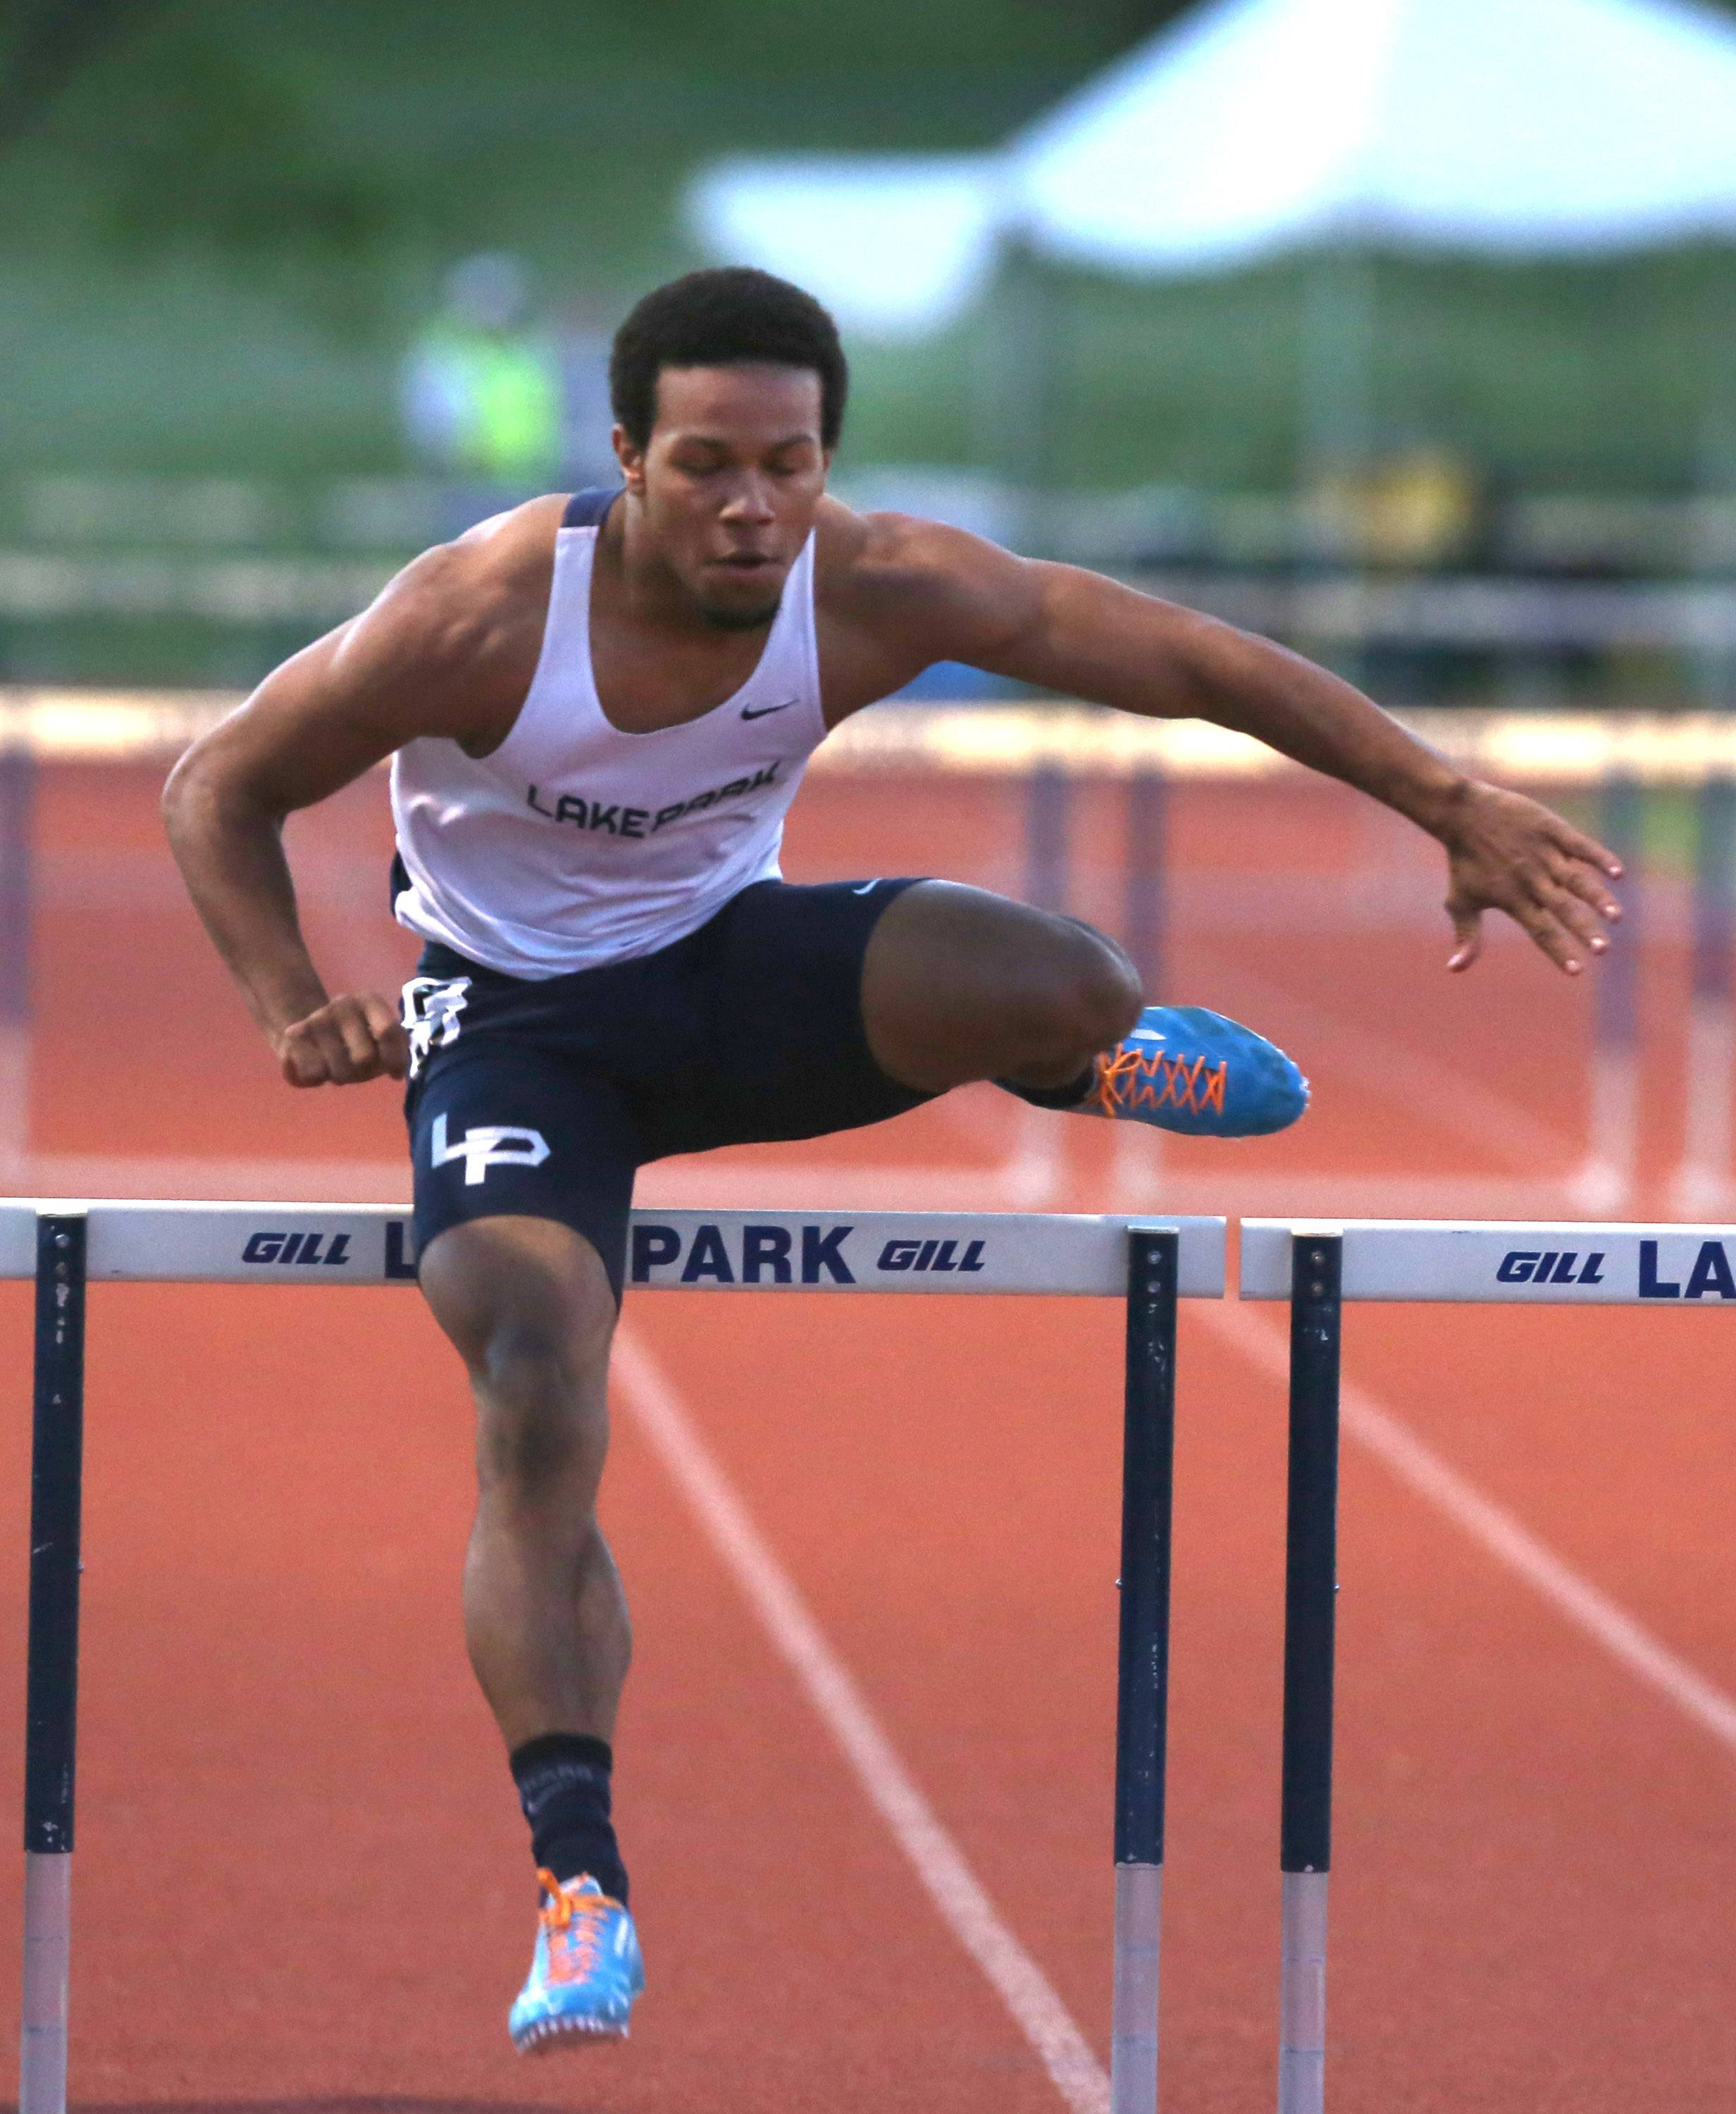 Lake Park's Antonio Shenault runs the 300 Meter Hurdles during the Lake Park Boys Track & Feld Sectional Championships.